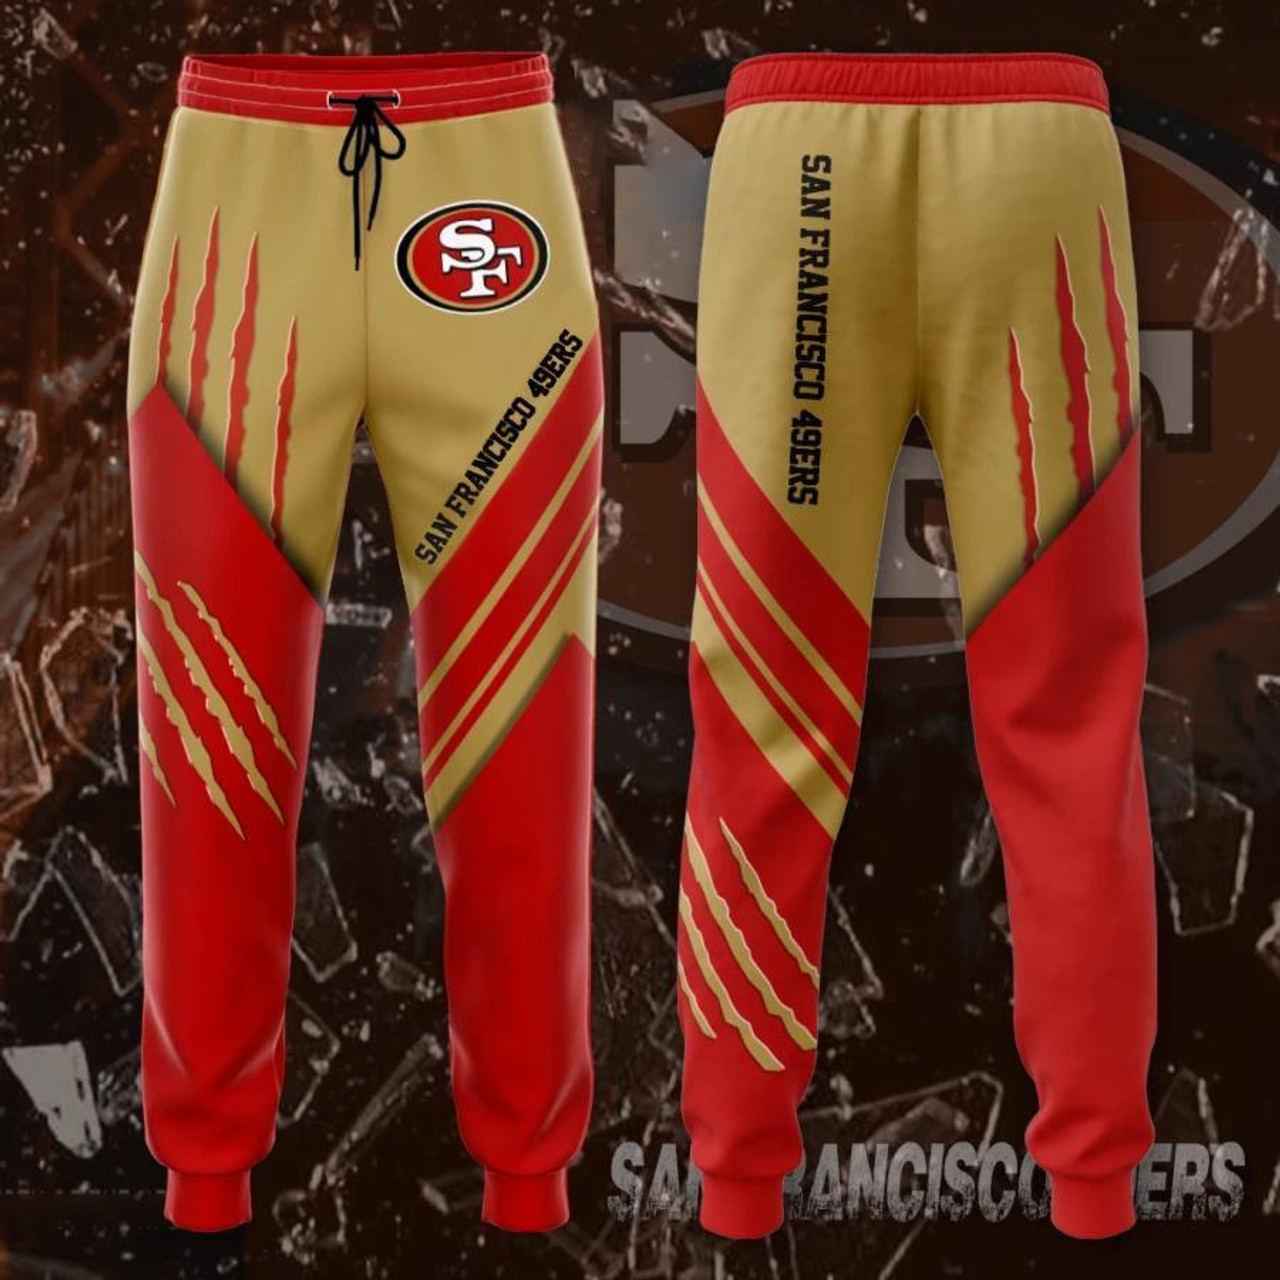 **(OFFICIAL-N.F.L.SAN-FRANCISCO-49ERS-TRENDY-TEAM-SPORT-SWEAT-PANTS & OFFICIAL-49ERS-TEAM-LOGOS & OFFICIAL-CLASSIC-49ERS-TEAM-COLORS/CUSTOM-DETAILED-3D-GRAPHIC-DOUBLE-SIDED-PRINTED/WARM-PREMIUM-TRENDY-49ERS-TEAM/FASHION-GAME-DAY-WINTER-SWEAT-PANTS)**